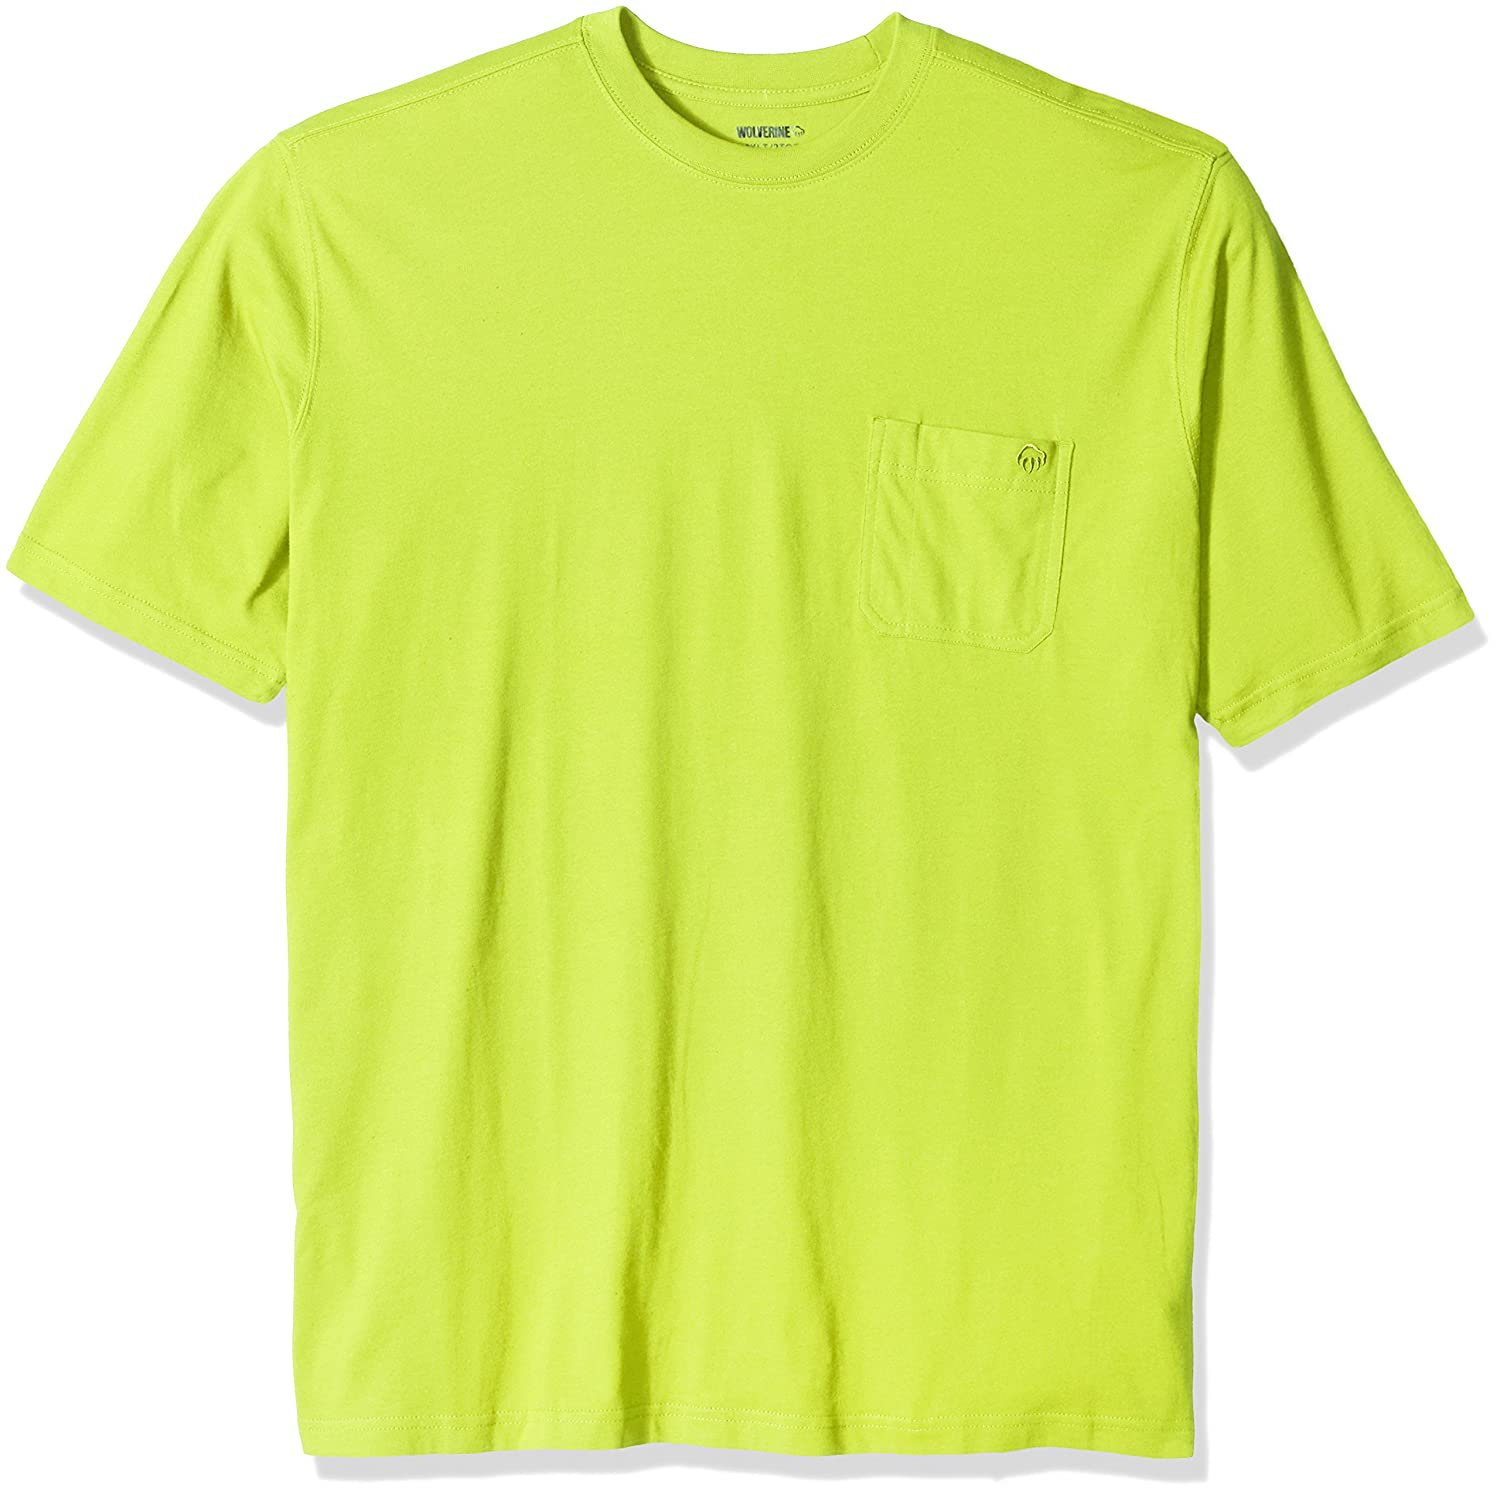 Wolverine SHIRT メンズ B01N0OLK2B X-Large / Tall|Hi Vis Green Hi Vis Green X-Large / Tall